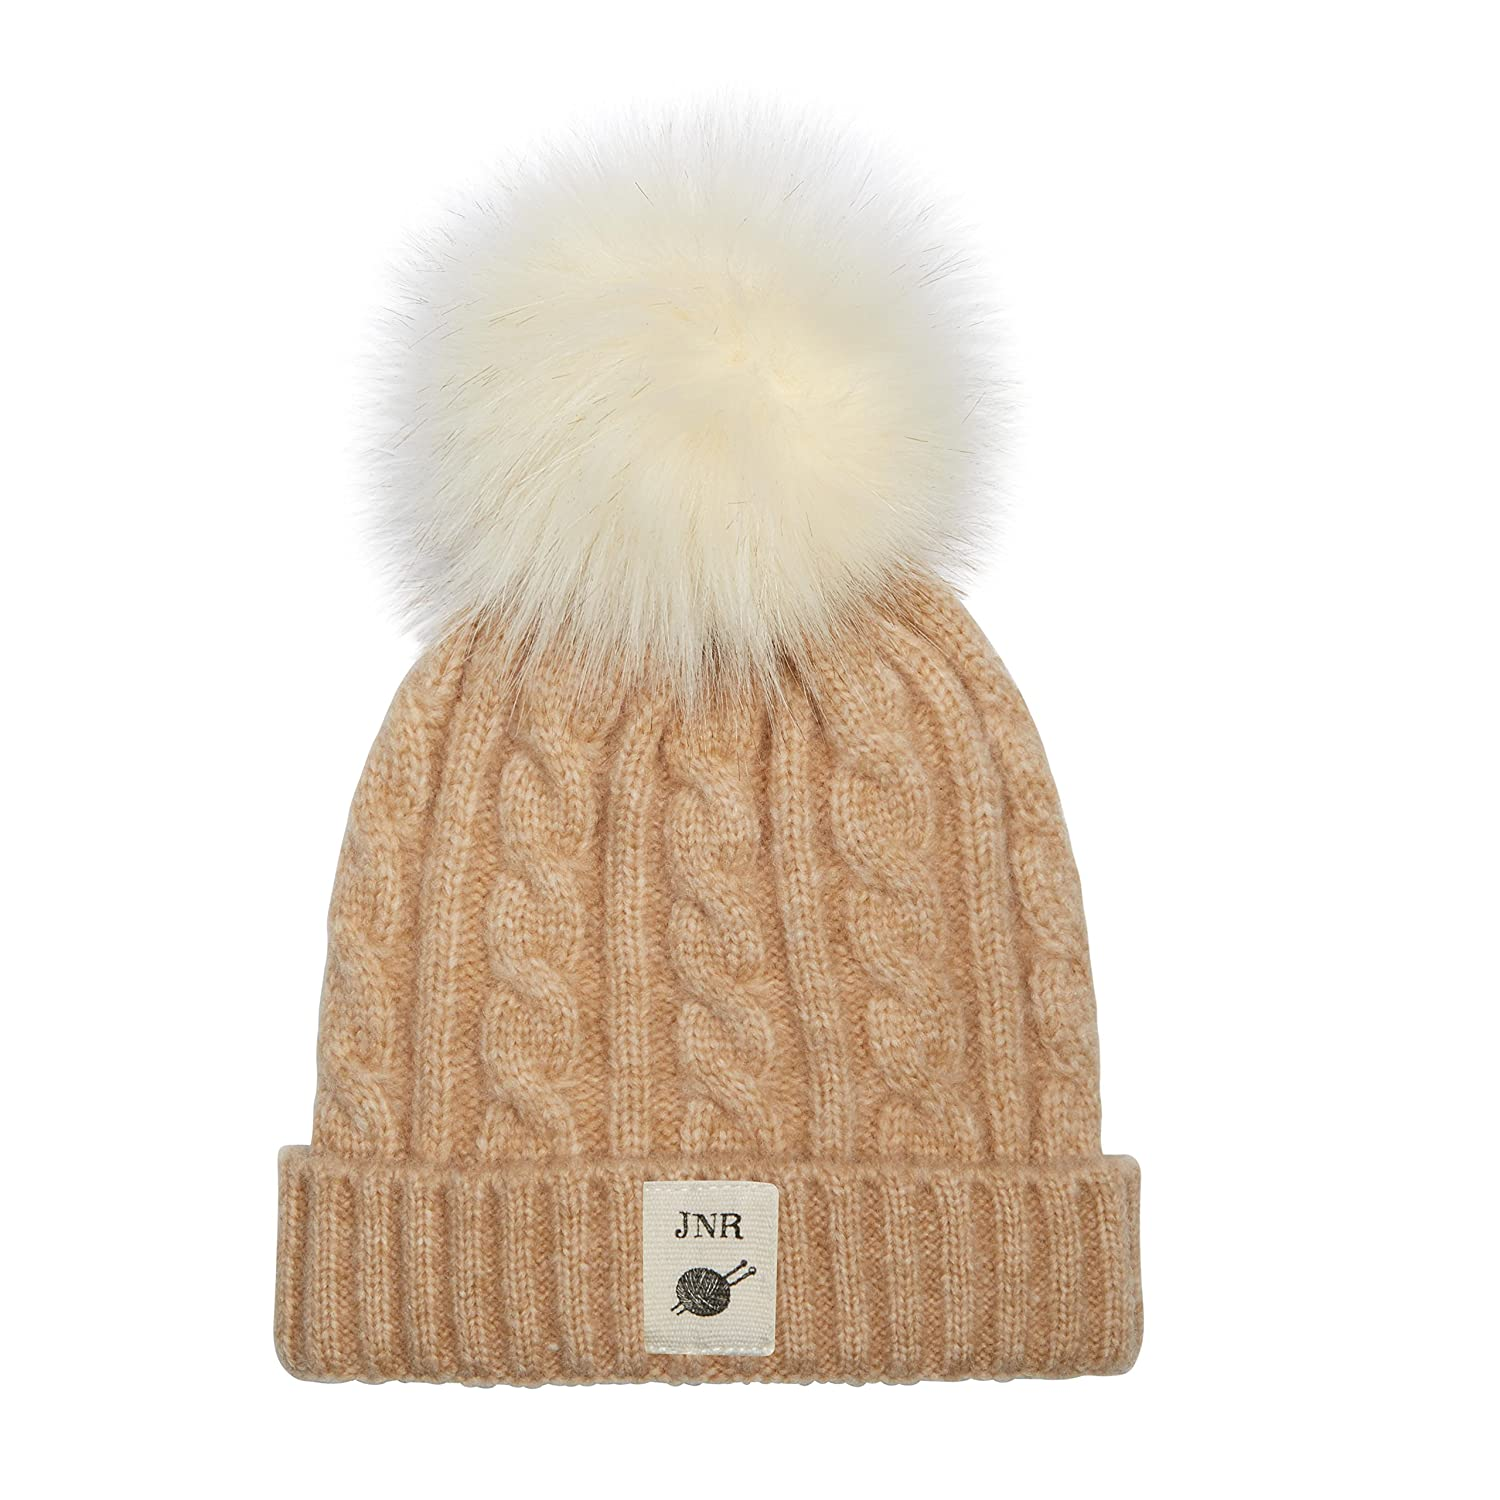 464460915d5 Amazon.com  Aran Traditions Kids Oatmeal Beige Cable Knit Faux Fur Pom Pom  Hat 3-6 Years  Clothing